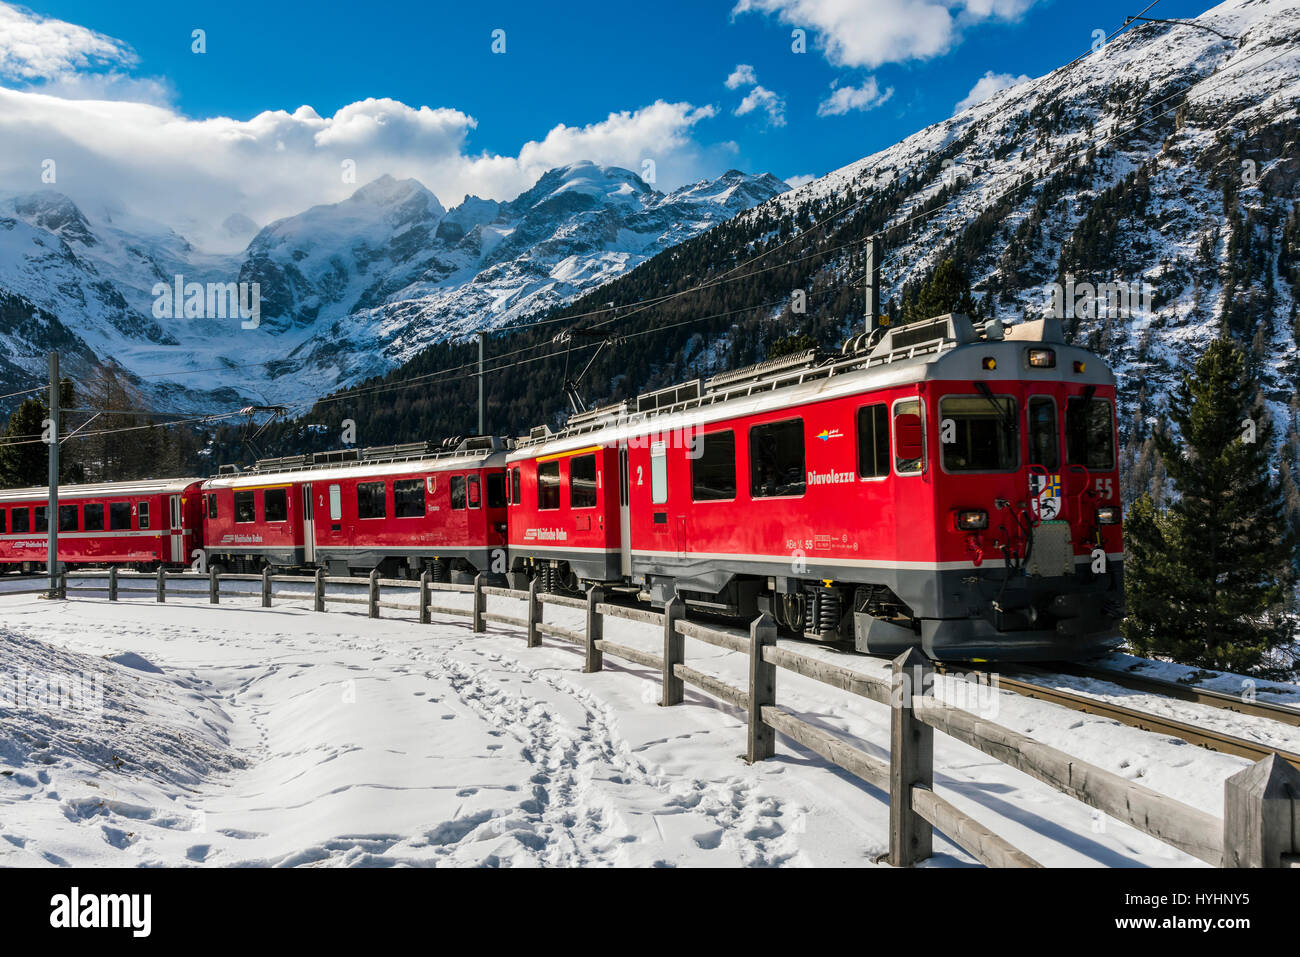 Winter view of Bernina Express red train with Bernina and Morteratsch Glacier in the background, Graubunden, Switzerland - Stock Image